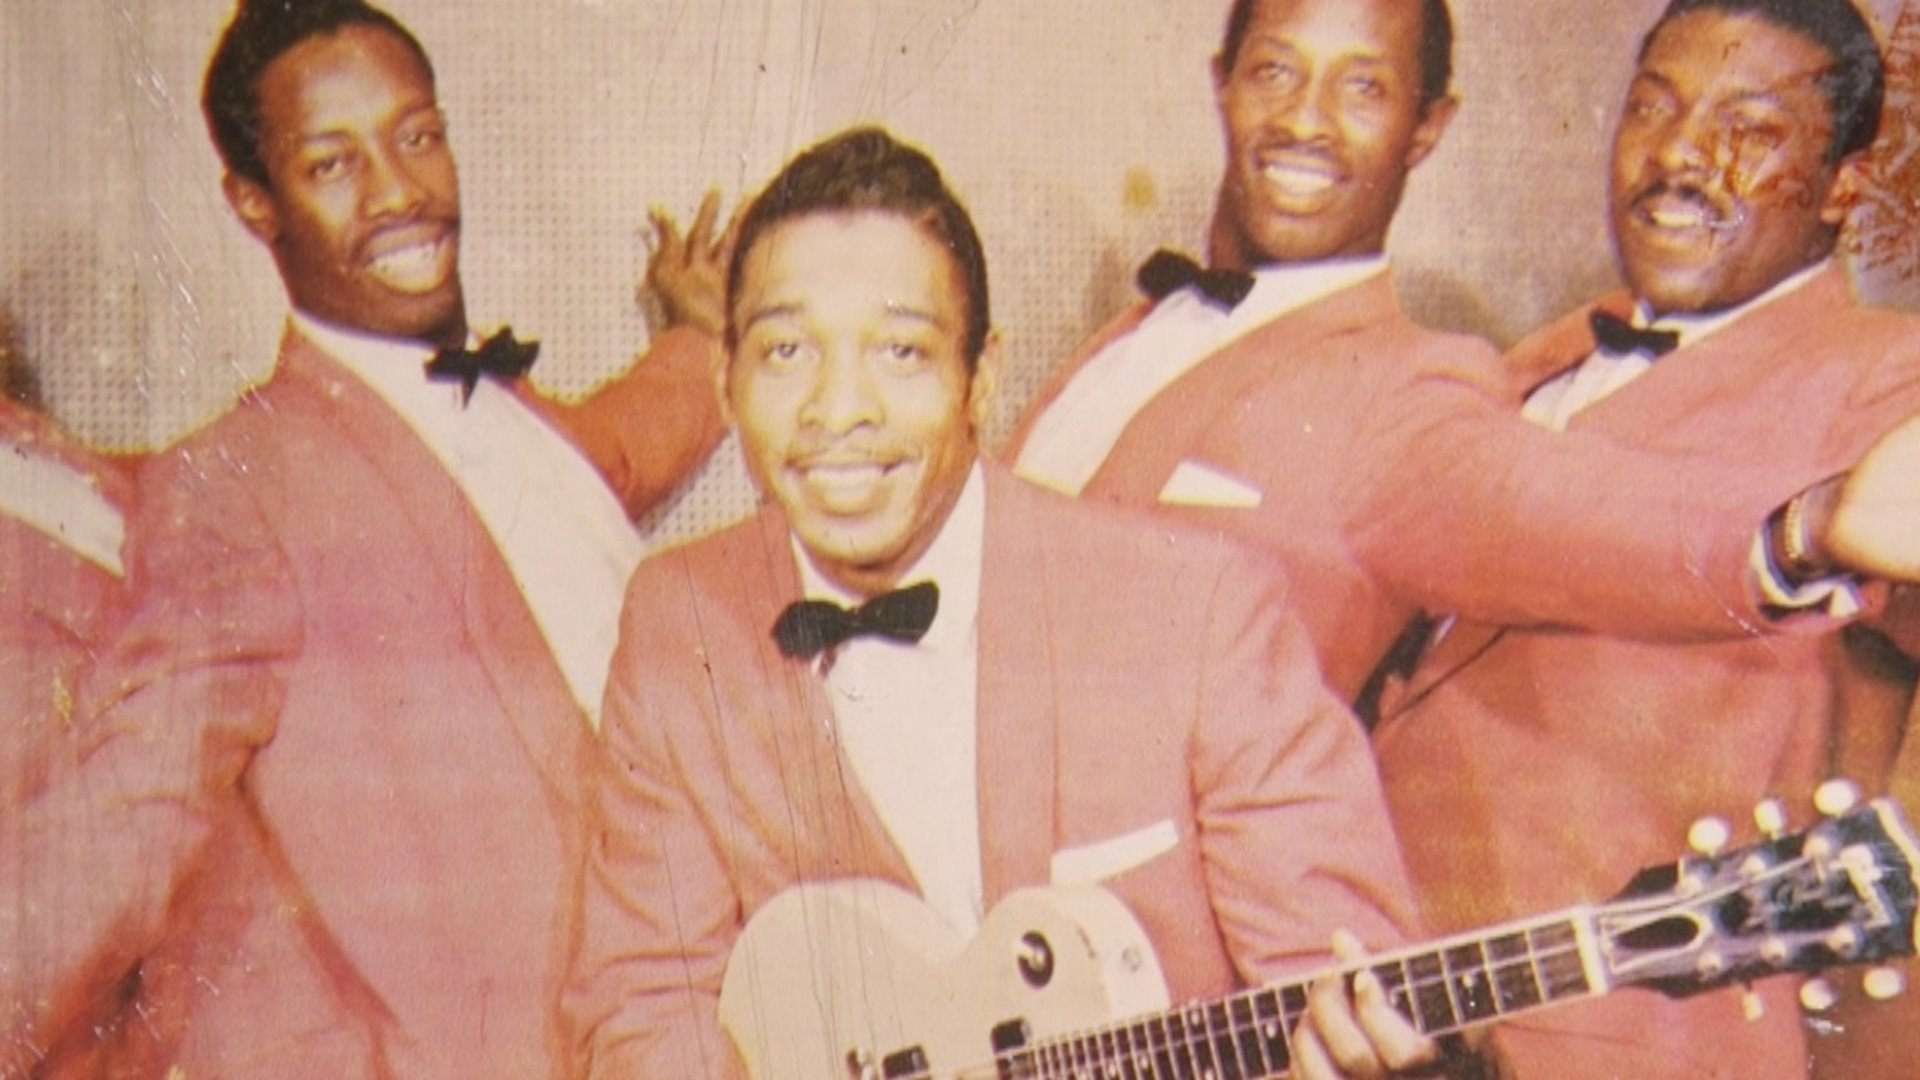 Winston-Salem music legend who influenced history of R&B honored